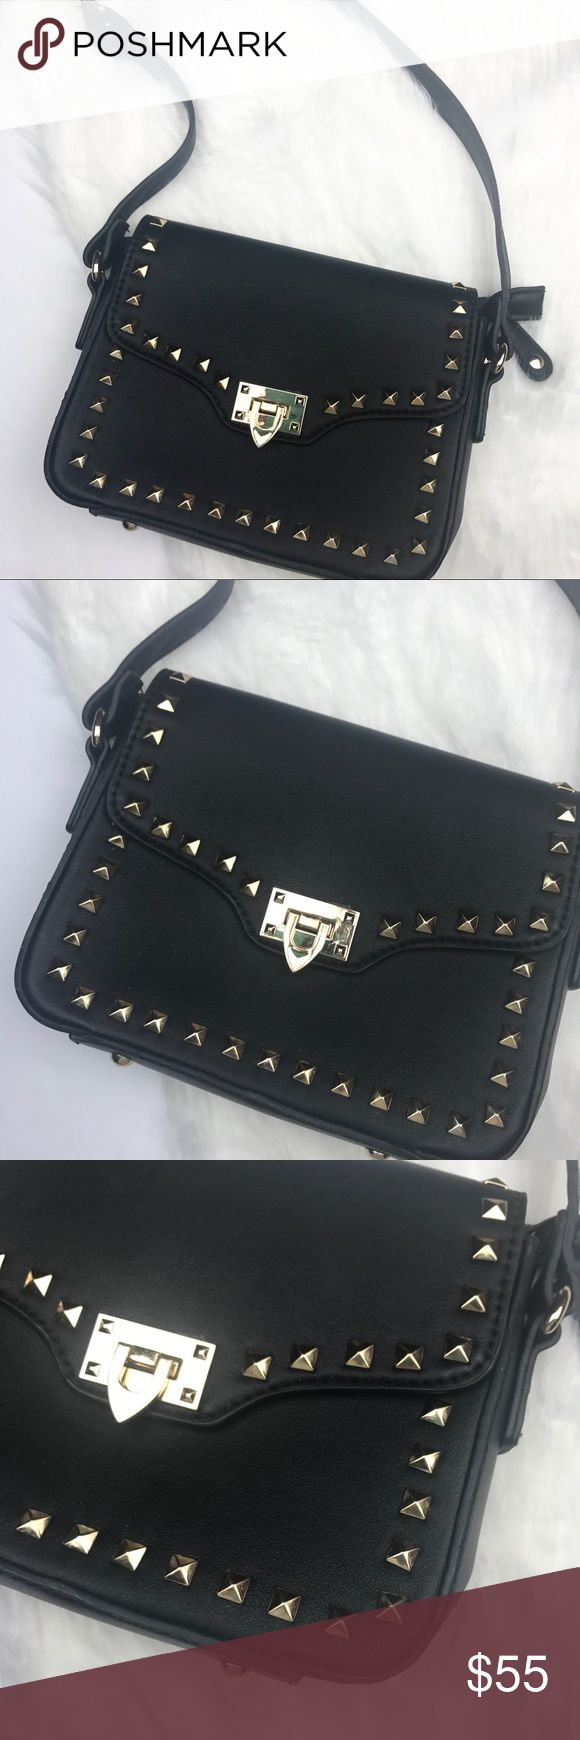 Black Vegan Leather Rockstud Crossbody Bag Good preowned condition • Used one time • Black vegan leather rockstud cross-body bag • Gold pyramid studs • Circular gold feet • Super trendy • Perfect for essentials • Adjustable cross-body strap, works for tall girls too • Very minor wear from storage • Ask all questions before purchasing! • Length: 7 inches • Width (across): 9 inches *** (#176). Bags Crossbody Bags